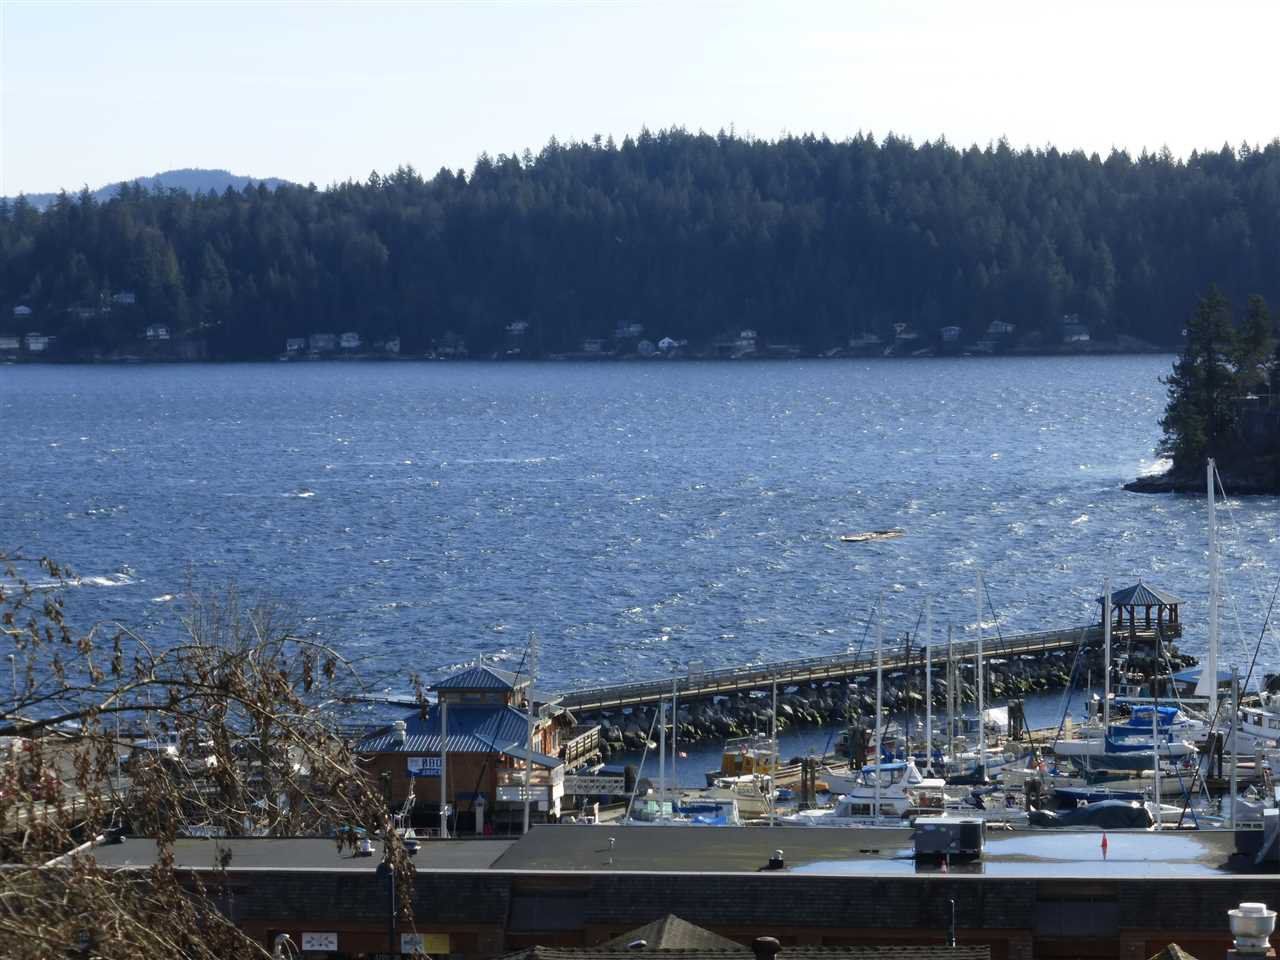 Main Photo: Lot 20 S FLETCHER Road in Gibsons: Gibsons & Area Land for sale (Sunshine Coast)  : MLS®# R2136567